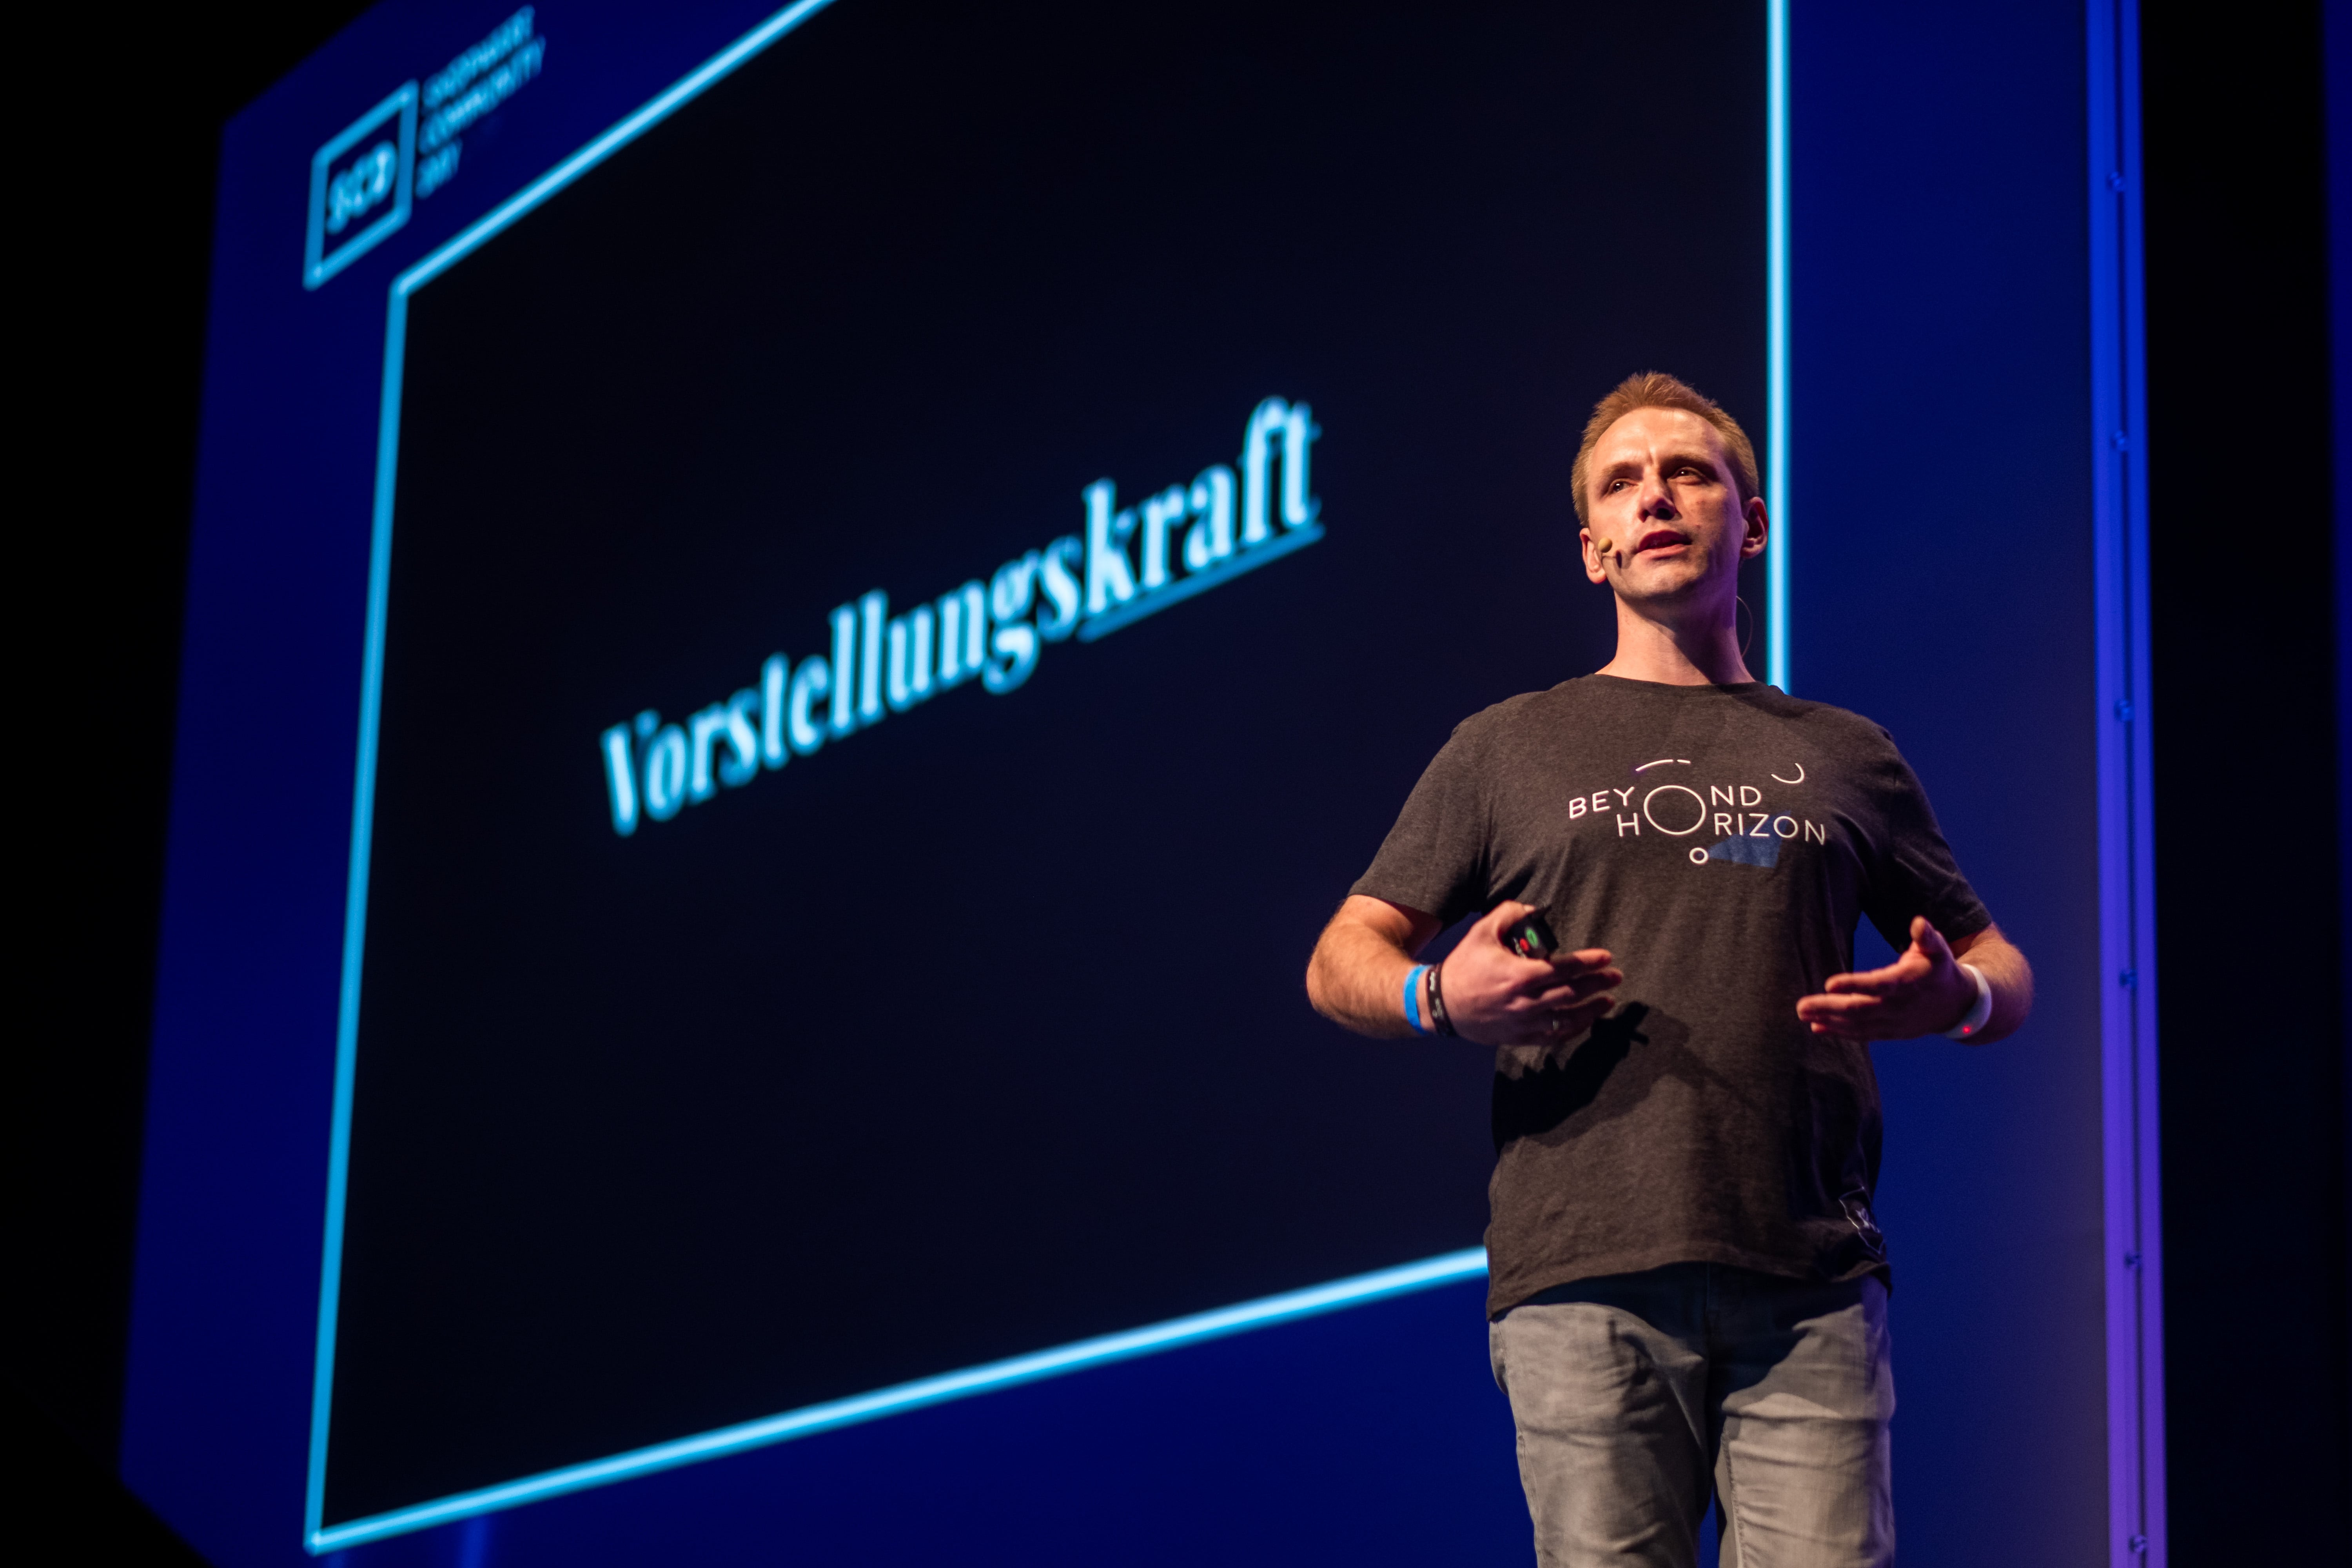 In-his-keynote-speech-Stefan-Hamann-presents-the-latest-news-and-visionary-ideas-emerging-from-the-Shopware-ecosystem